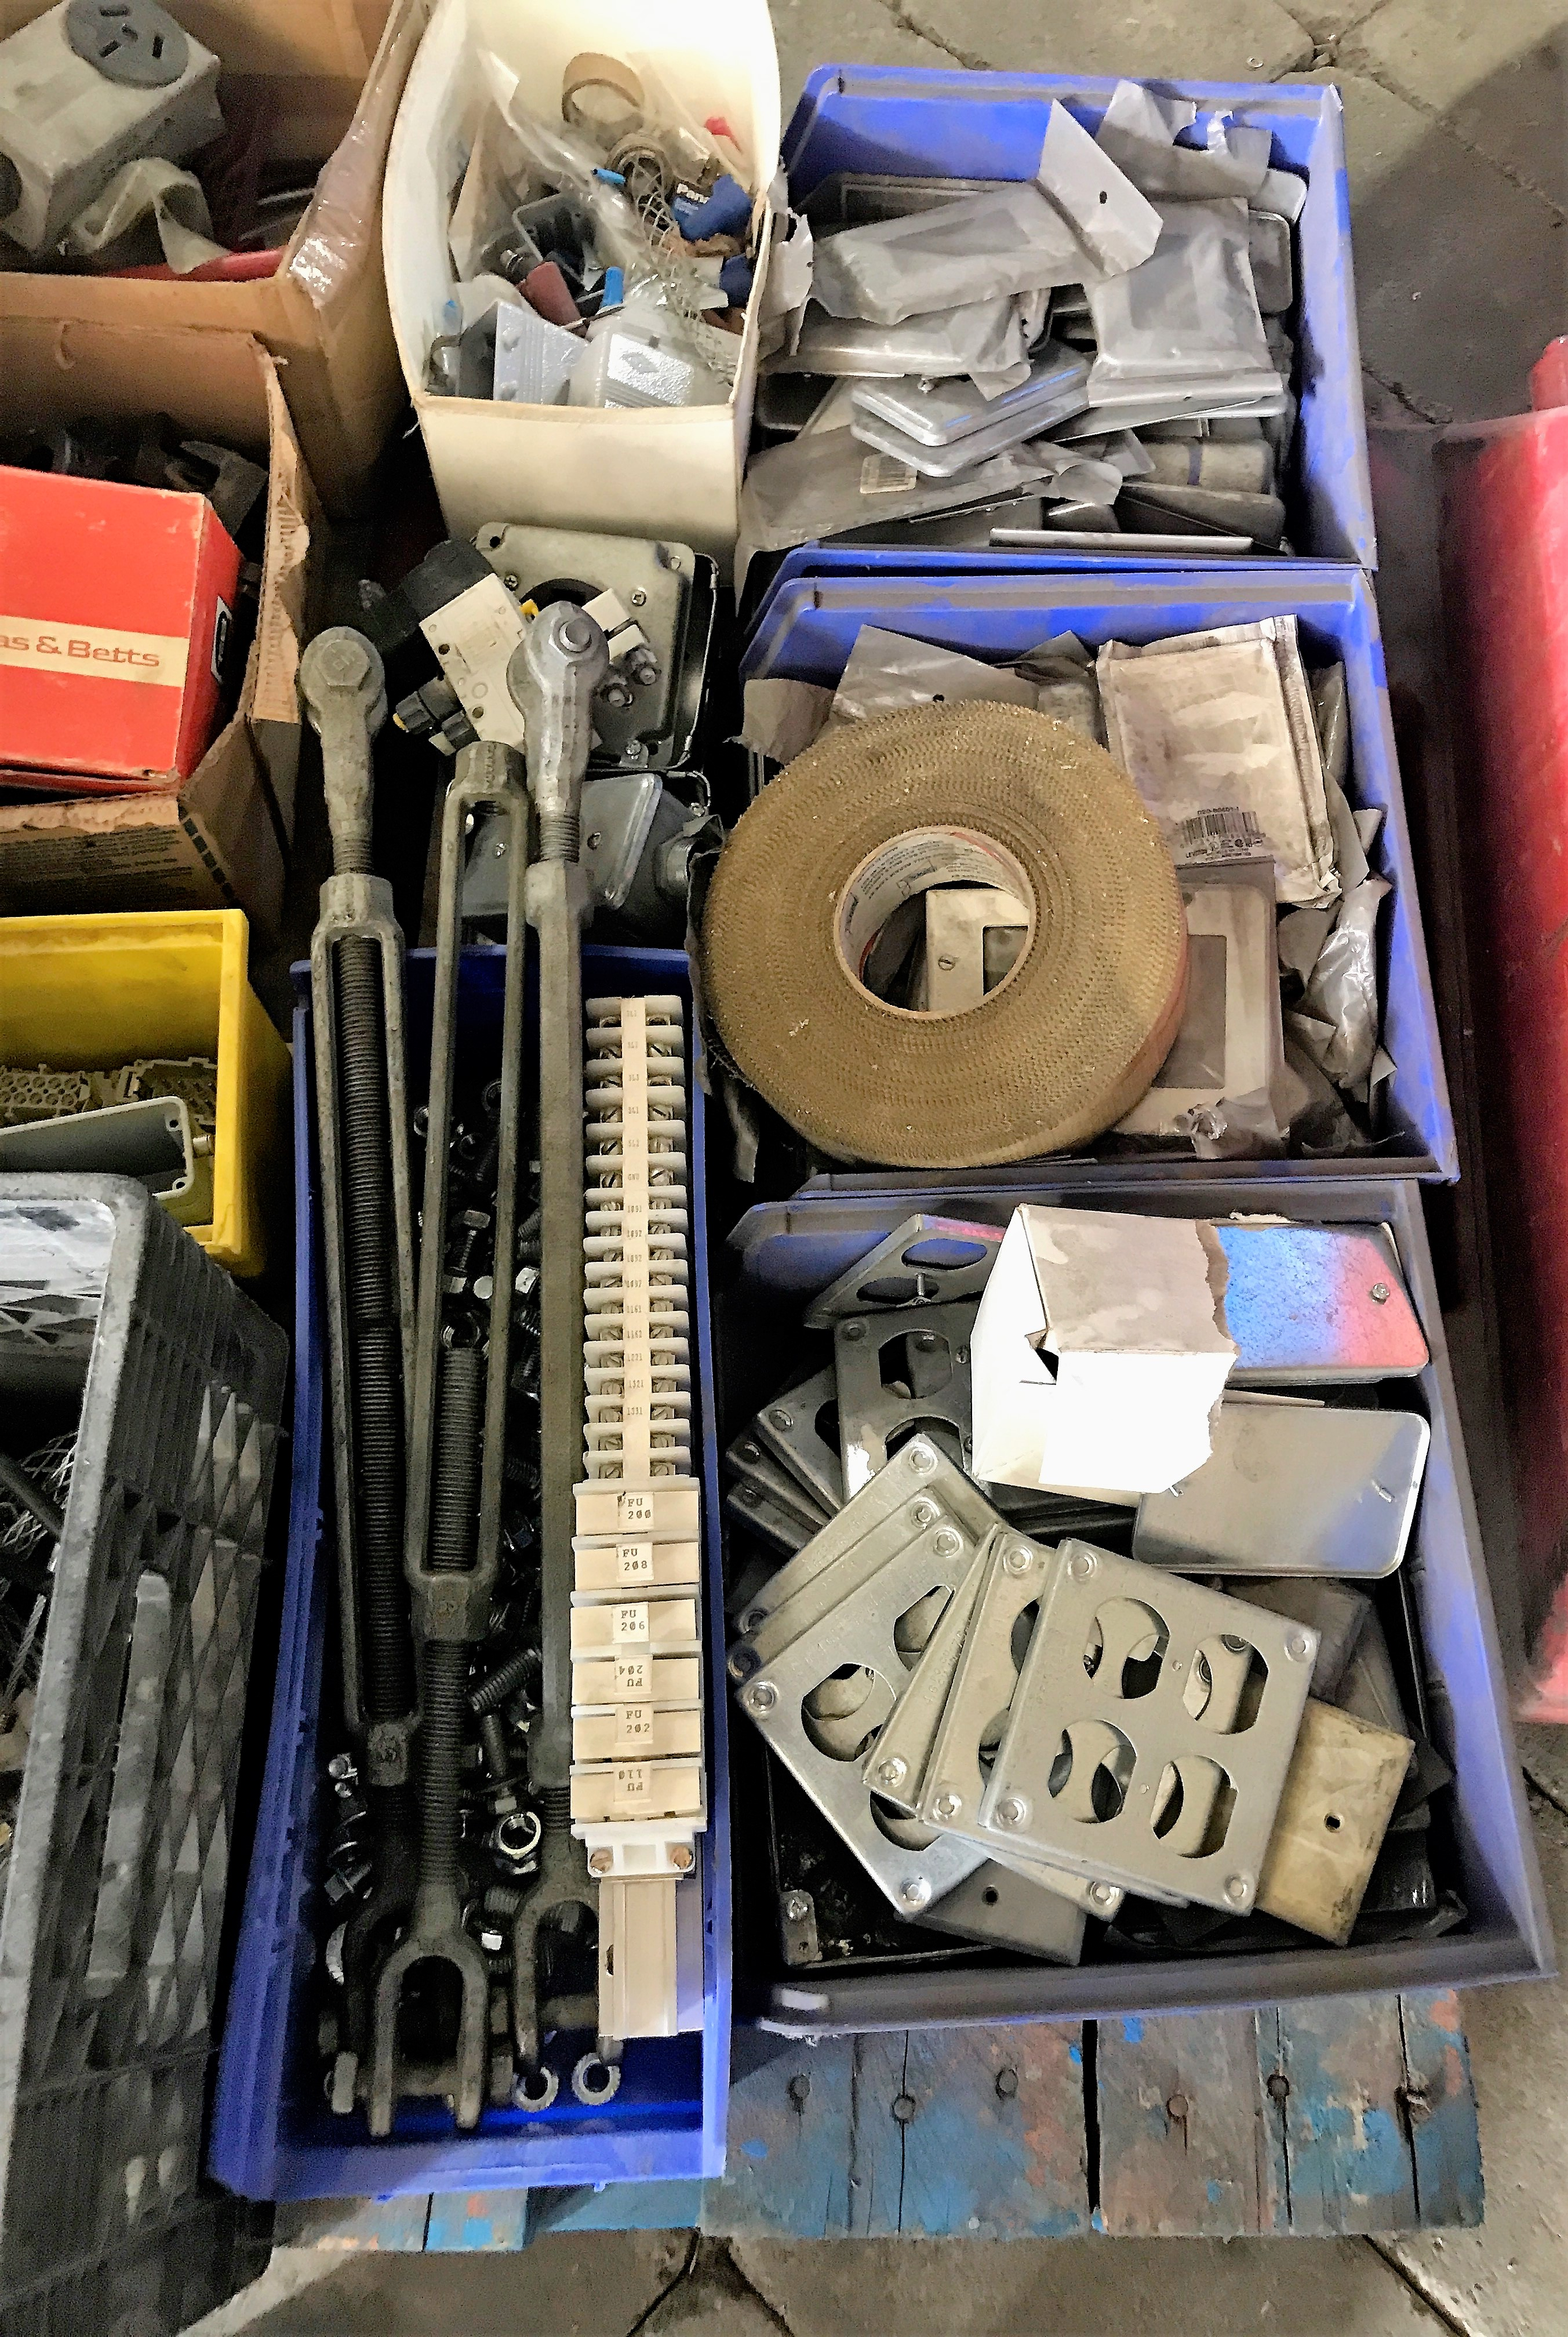 Lot 51 - LARGE LOT OF ELECTRICAL SUPPLIES AND CABINETS INCLUDING PLUGS, LUGS, SUBMERSIBLE PUMP, ETC.